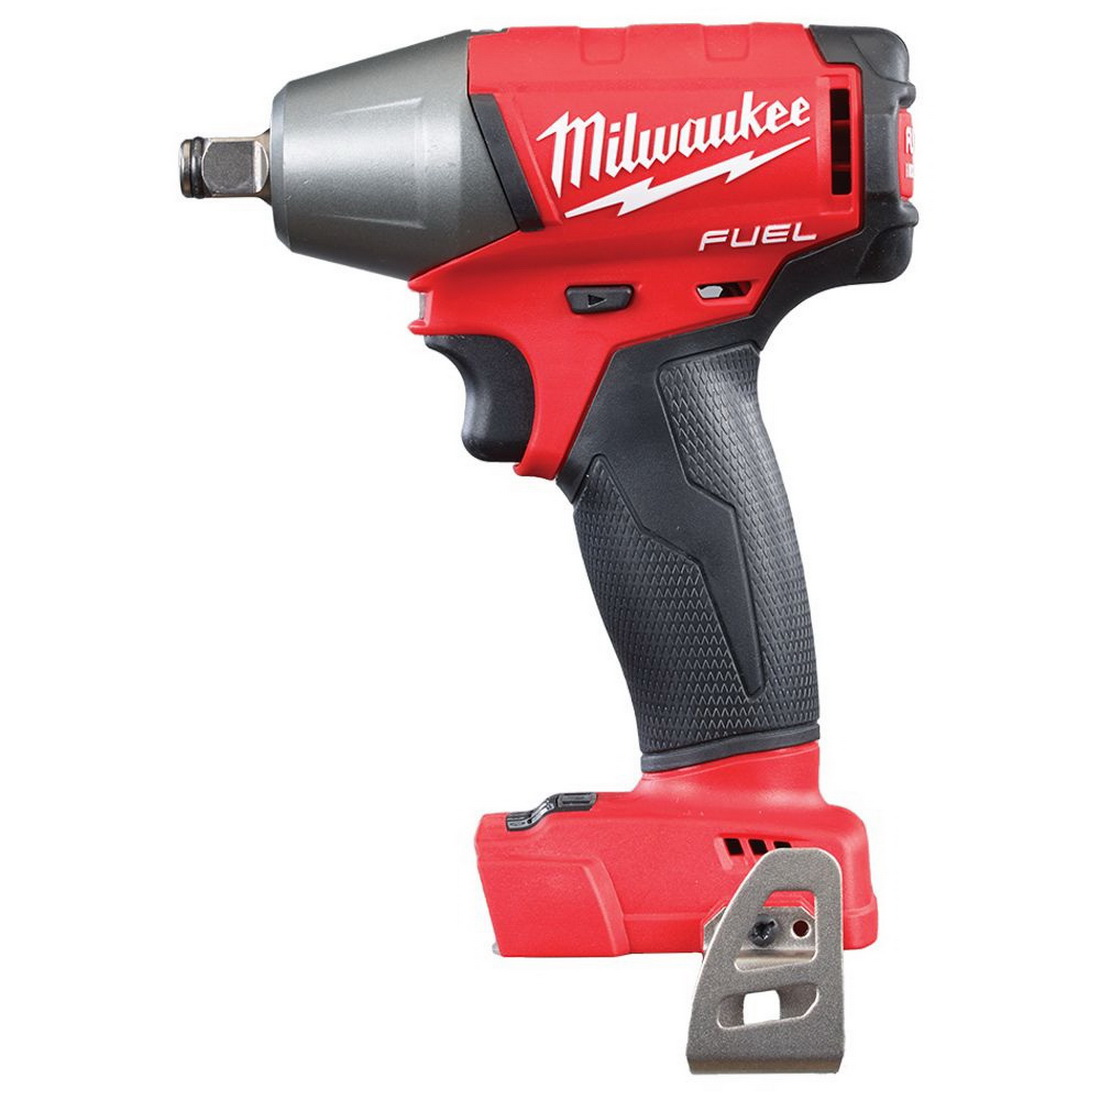 M18 FUEL 1/2inch Li-ion Cordless Impact Wrench with Friction Ring Skin Only M18FIWF12-0